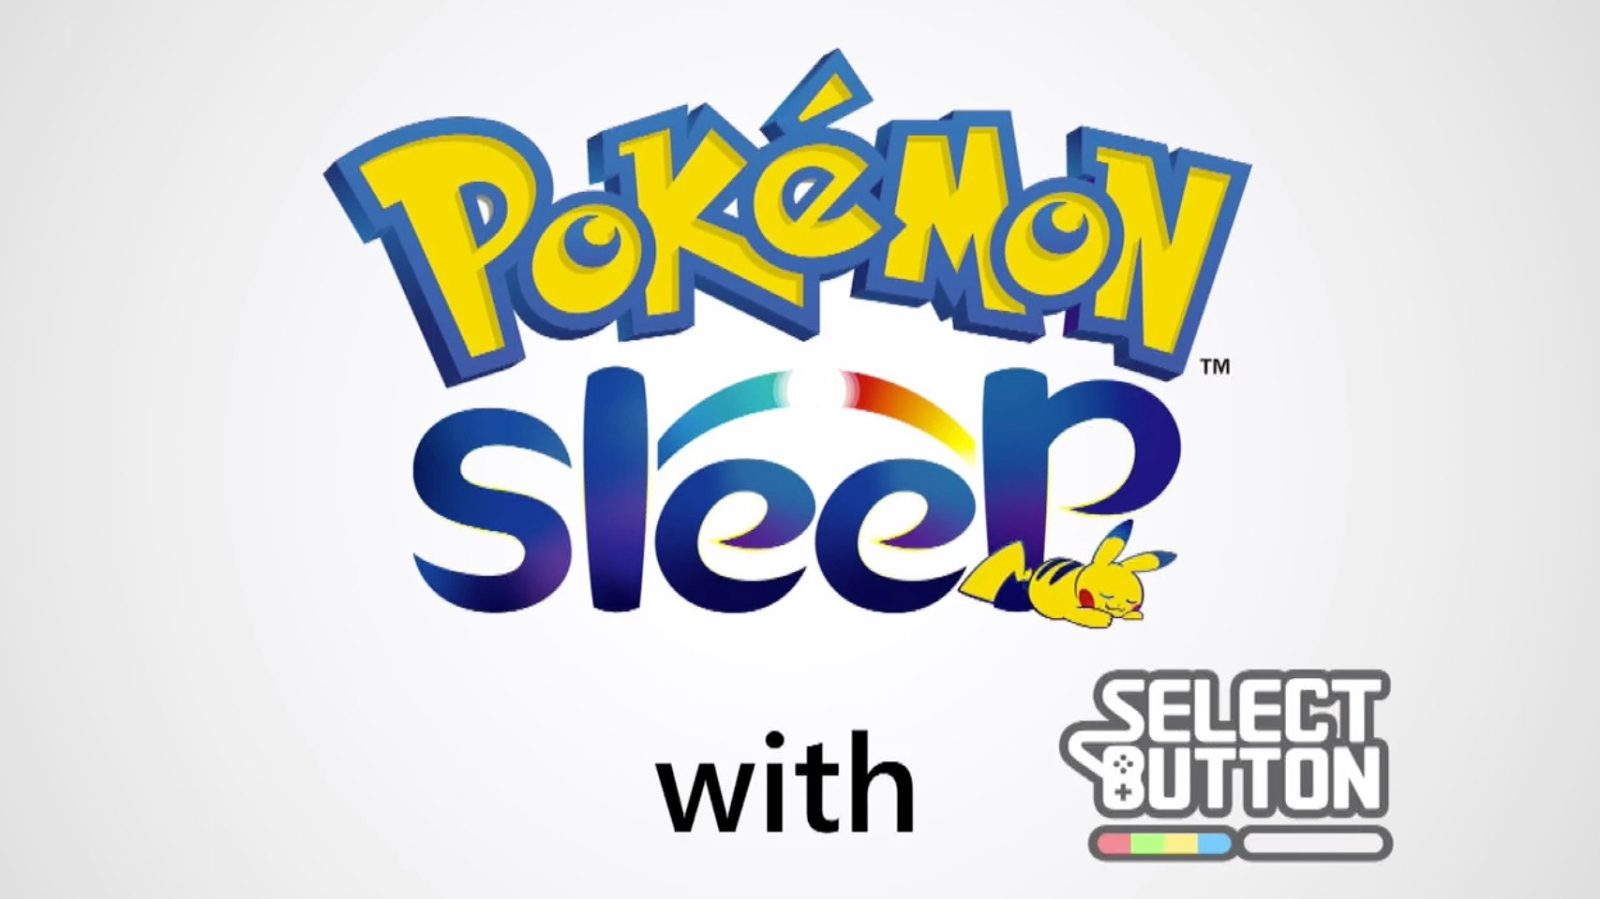 Pokemon HOME Is A Cloud Service To Connect Your Pokemon, And You Play Pokemon SLEEP By…Sleeping